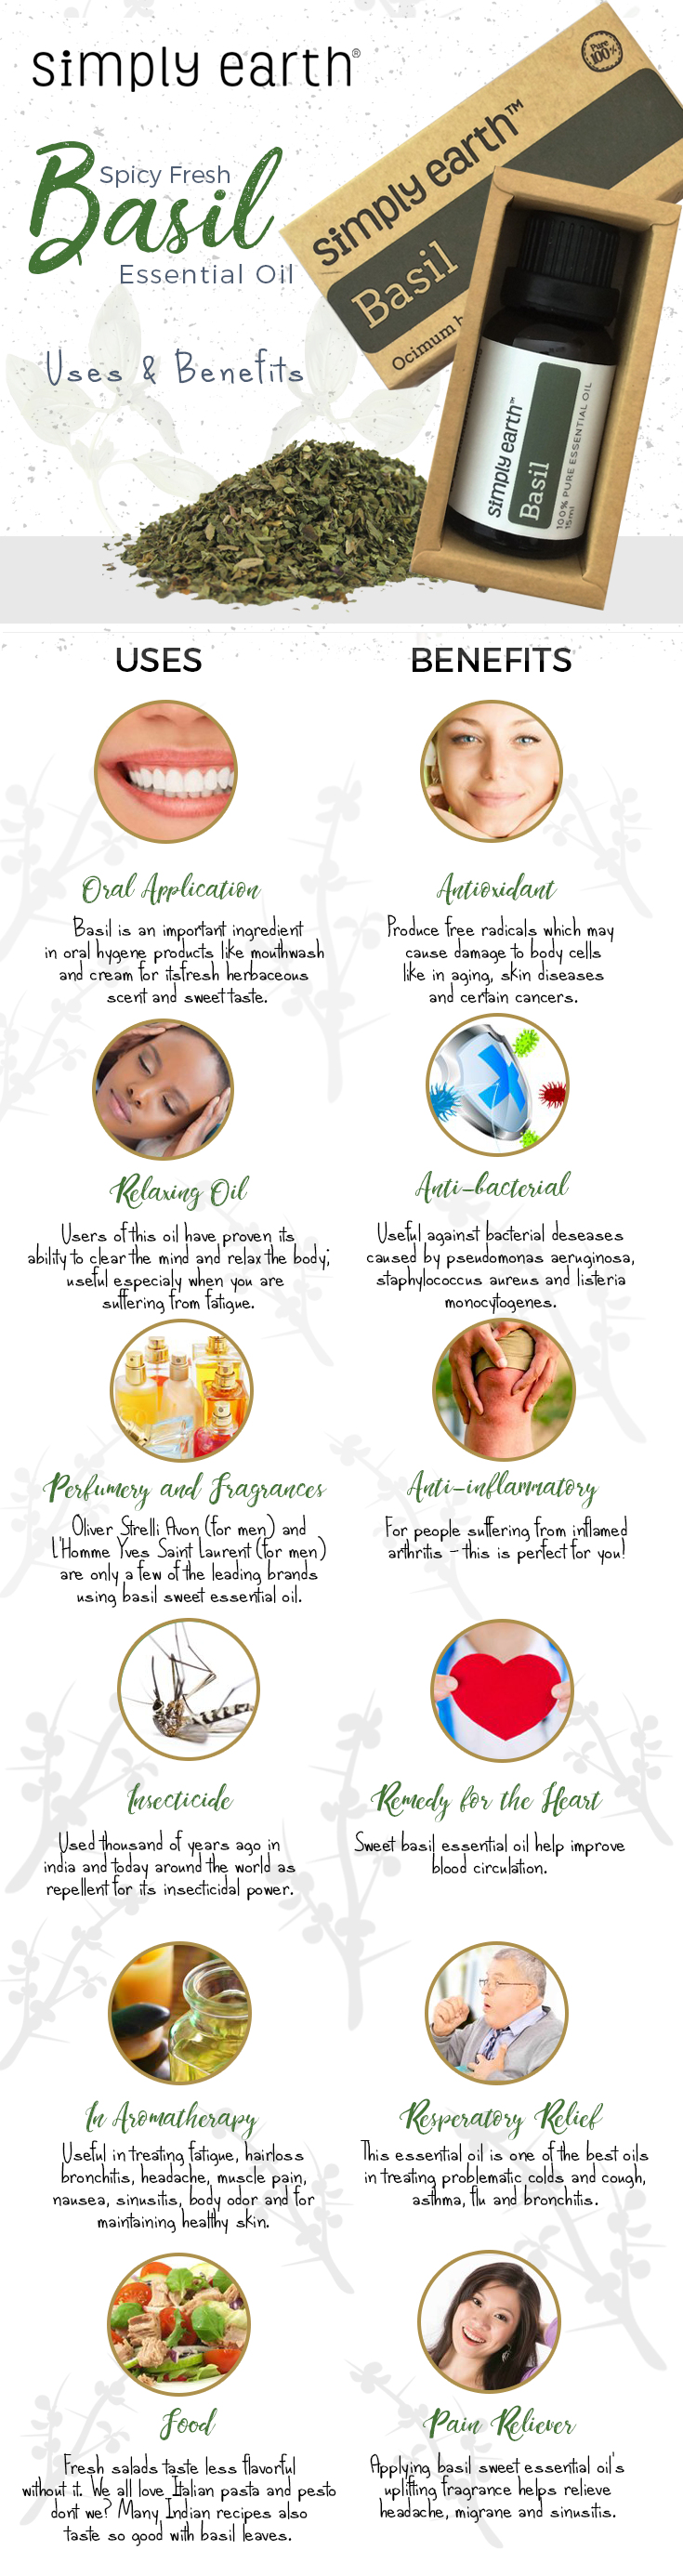 basil sweet essential oil uses and benefits infographic